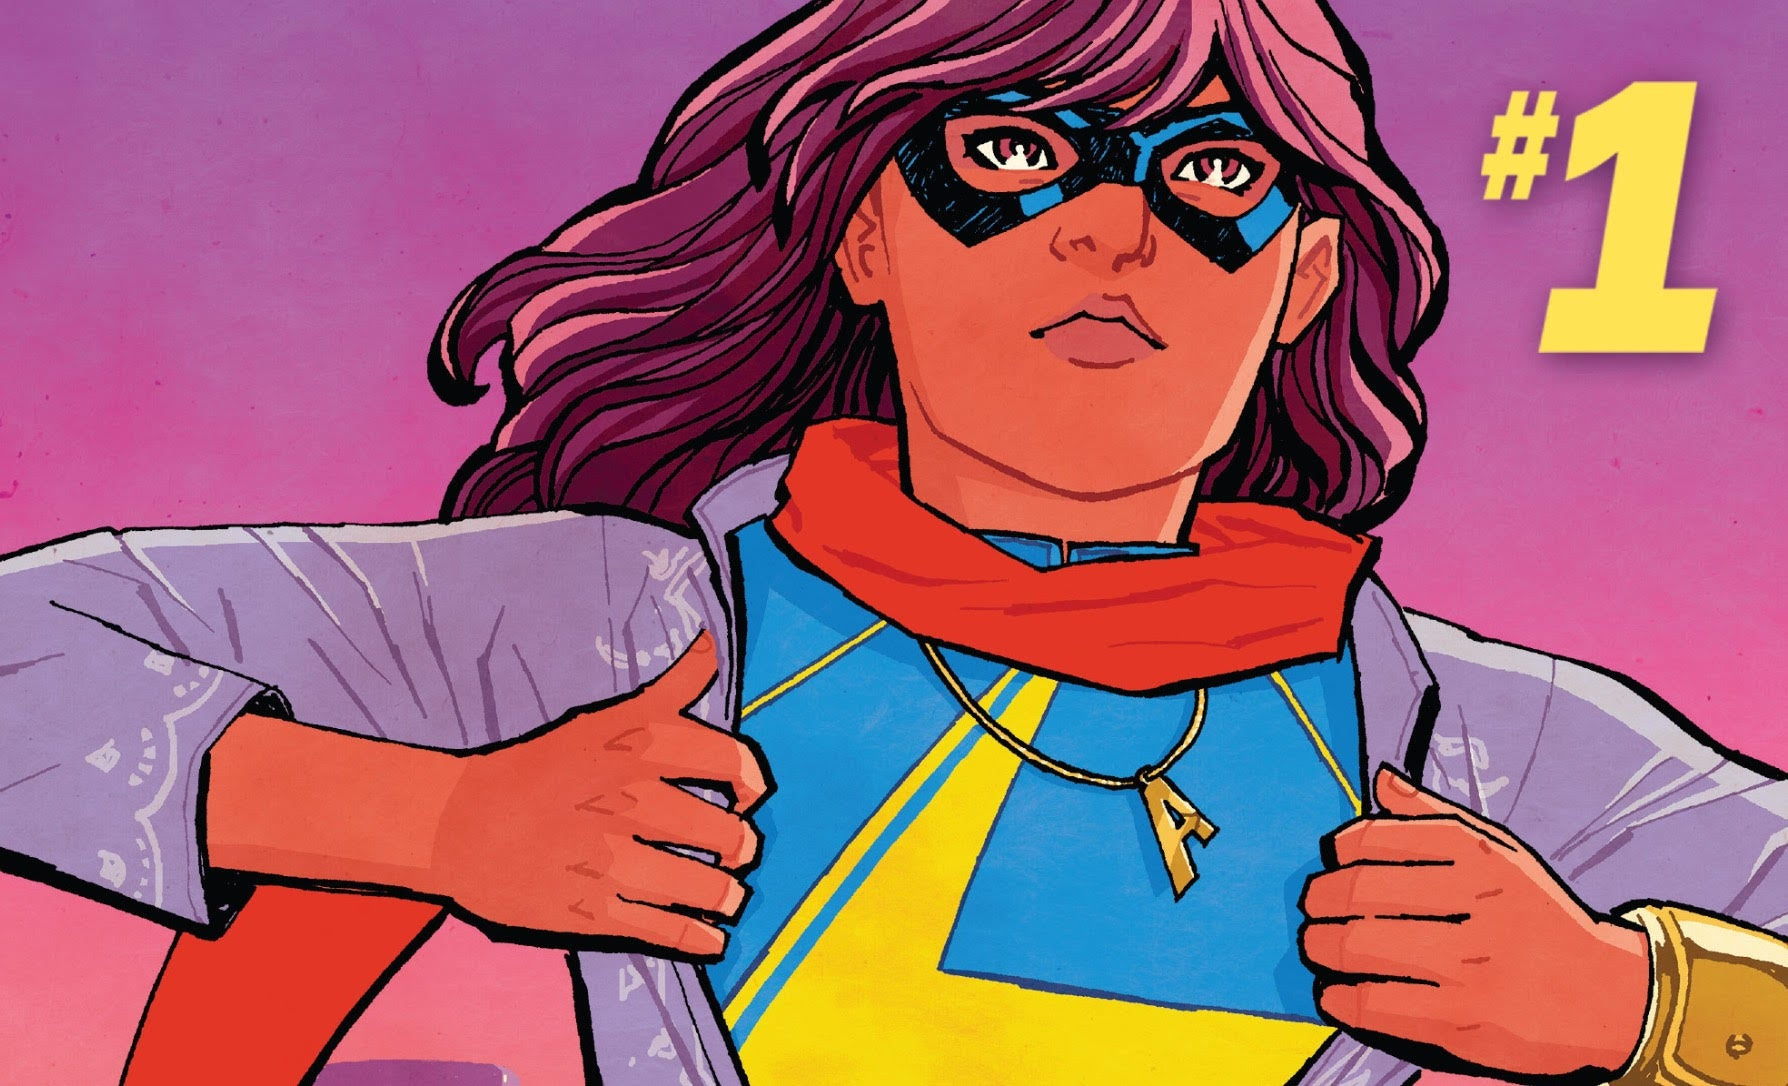 Ms Marvel #1 Cover